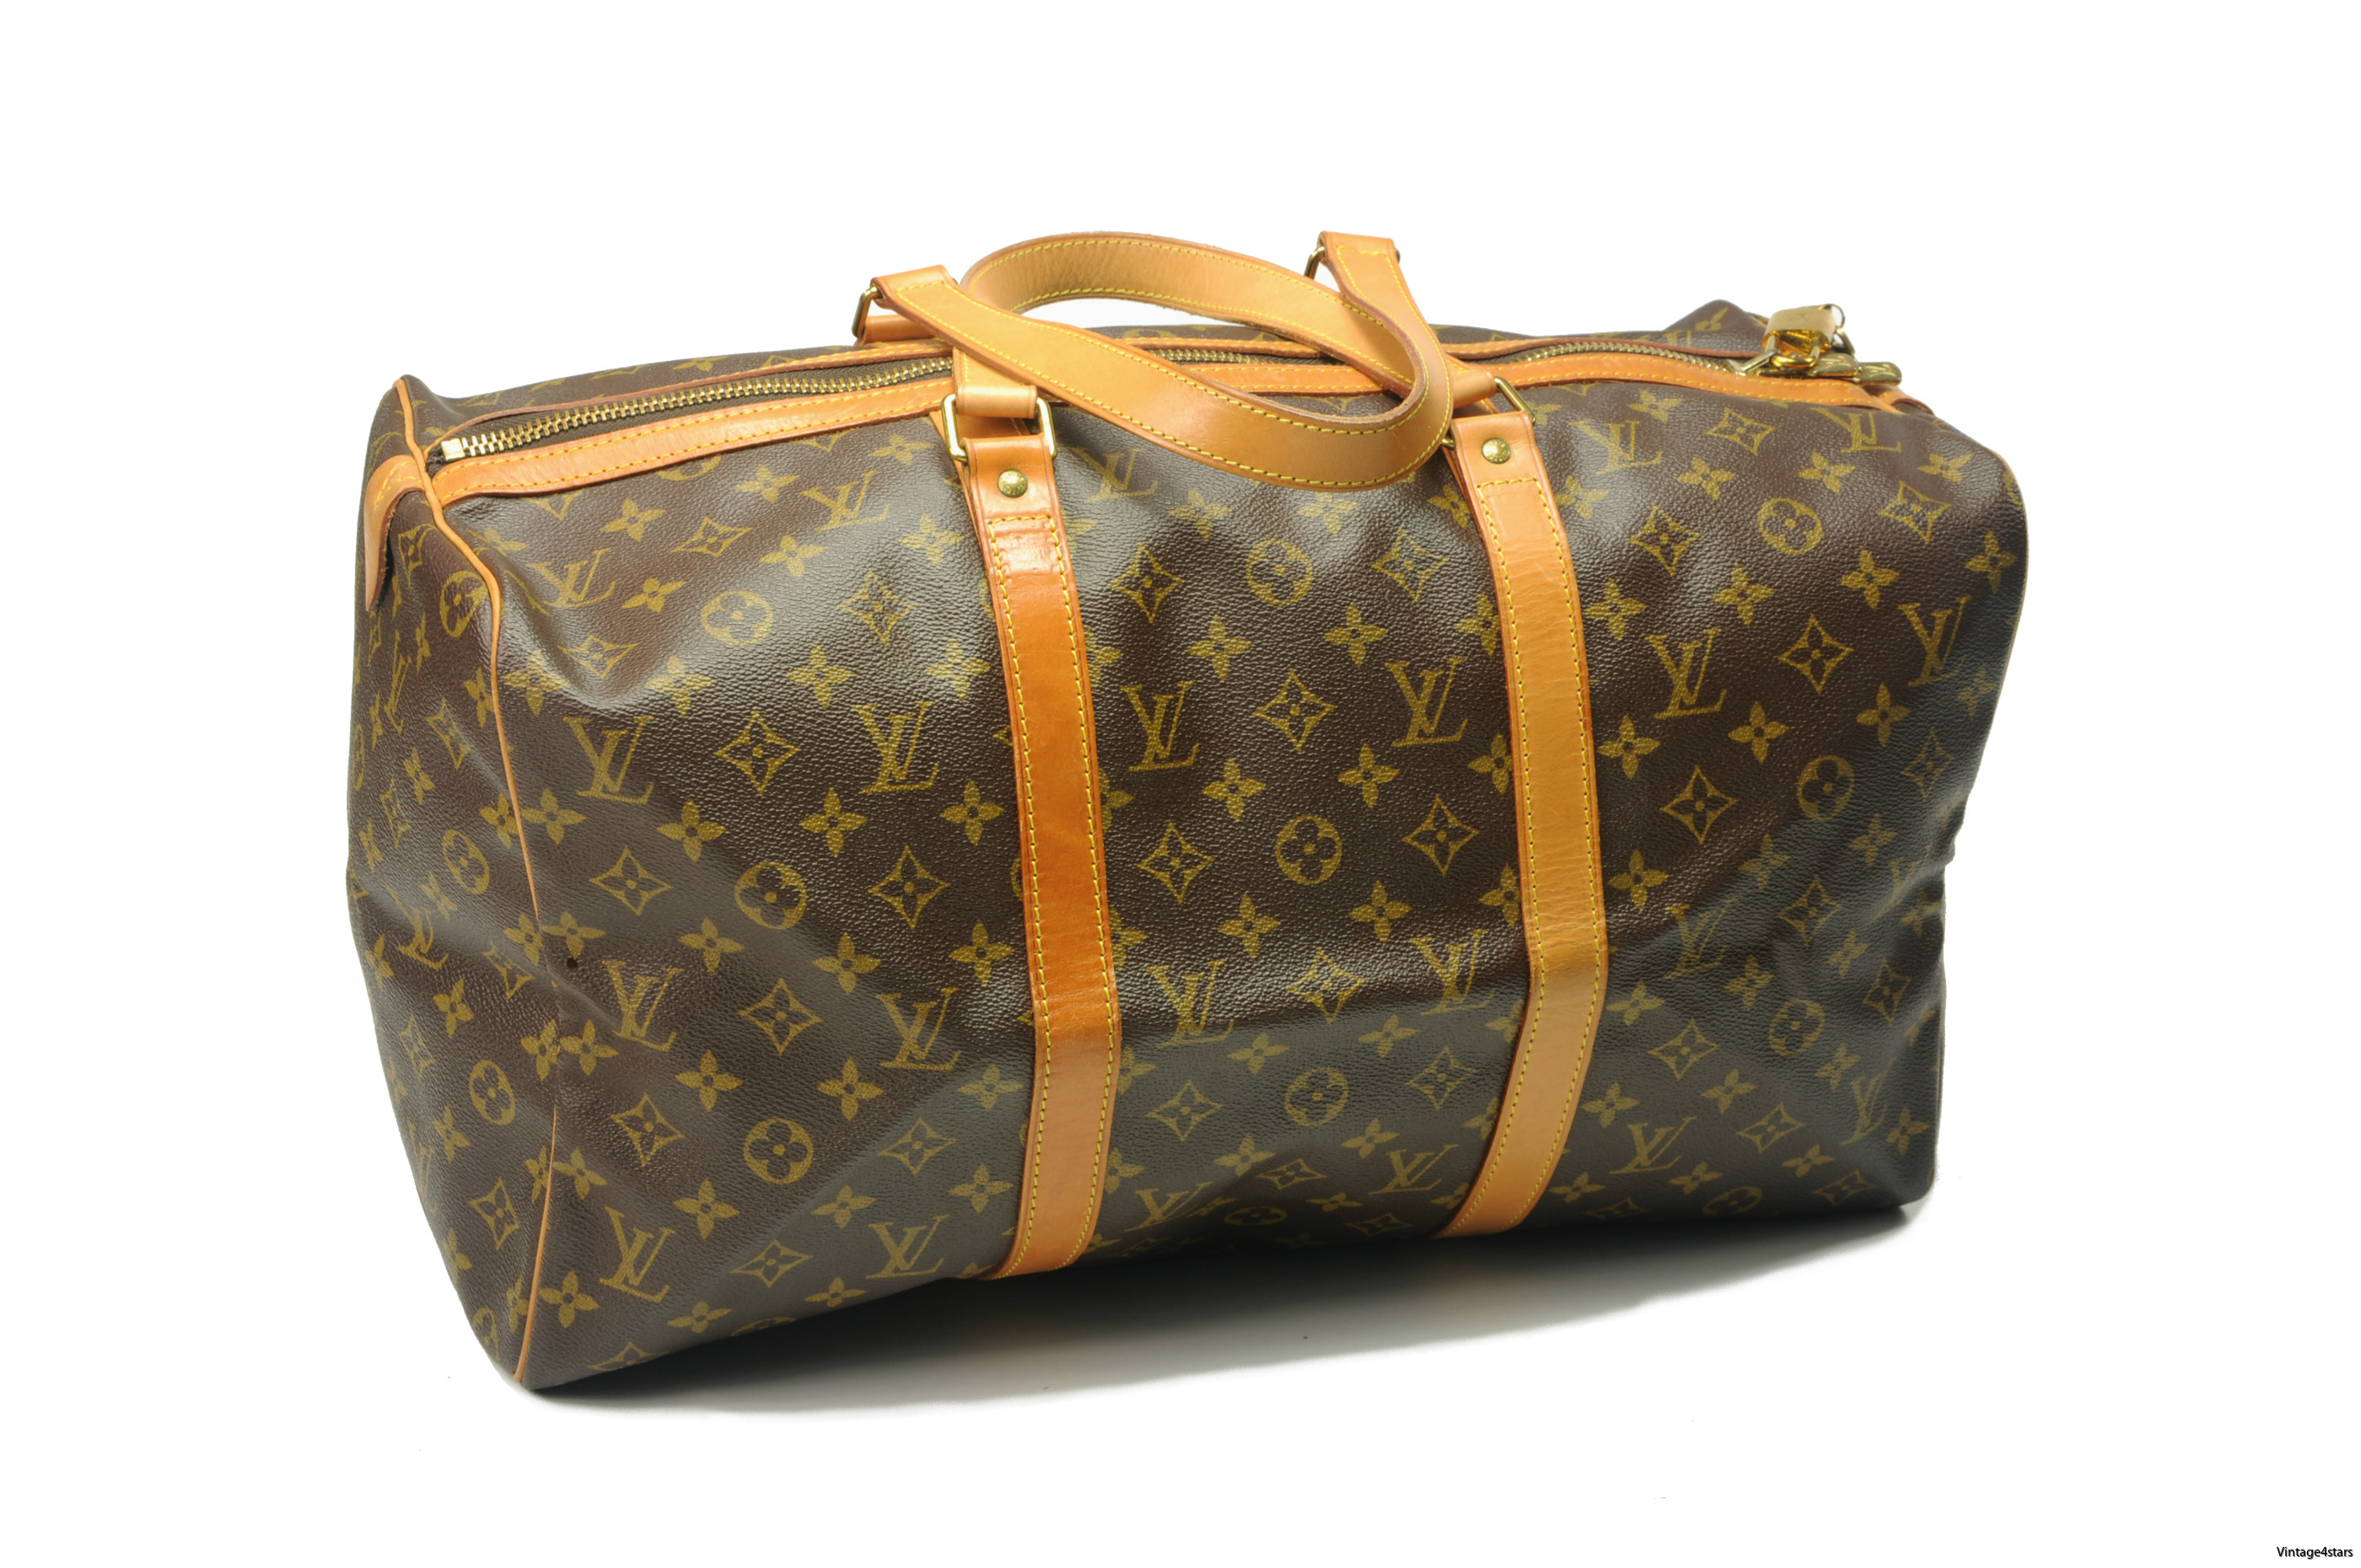 Louis Vuitton Sac Souple 45a